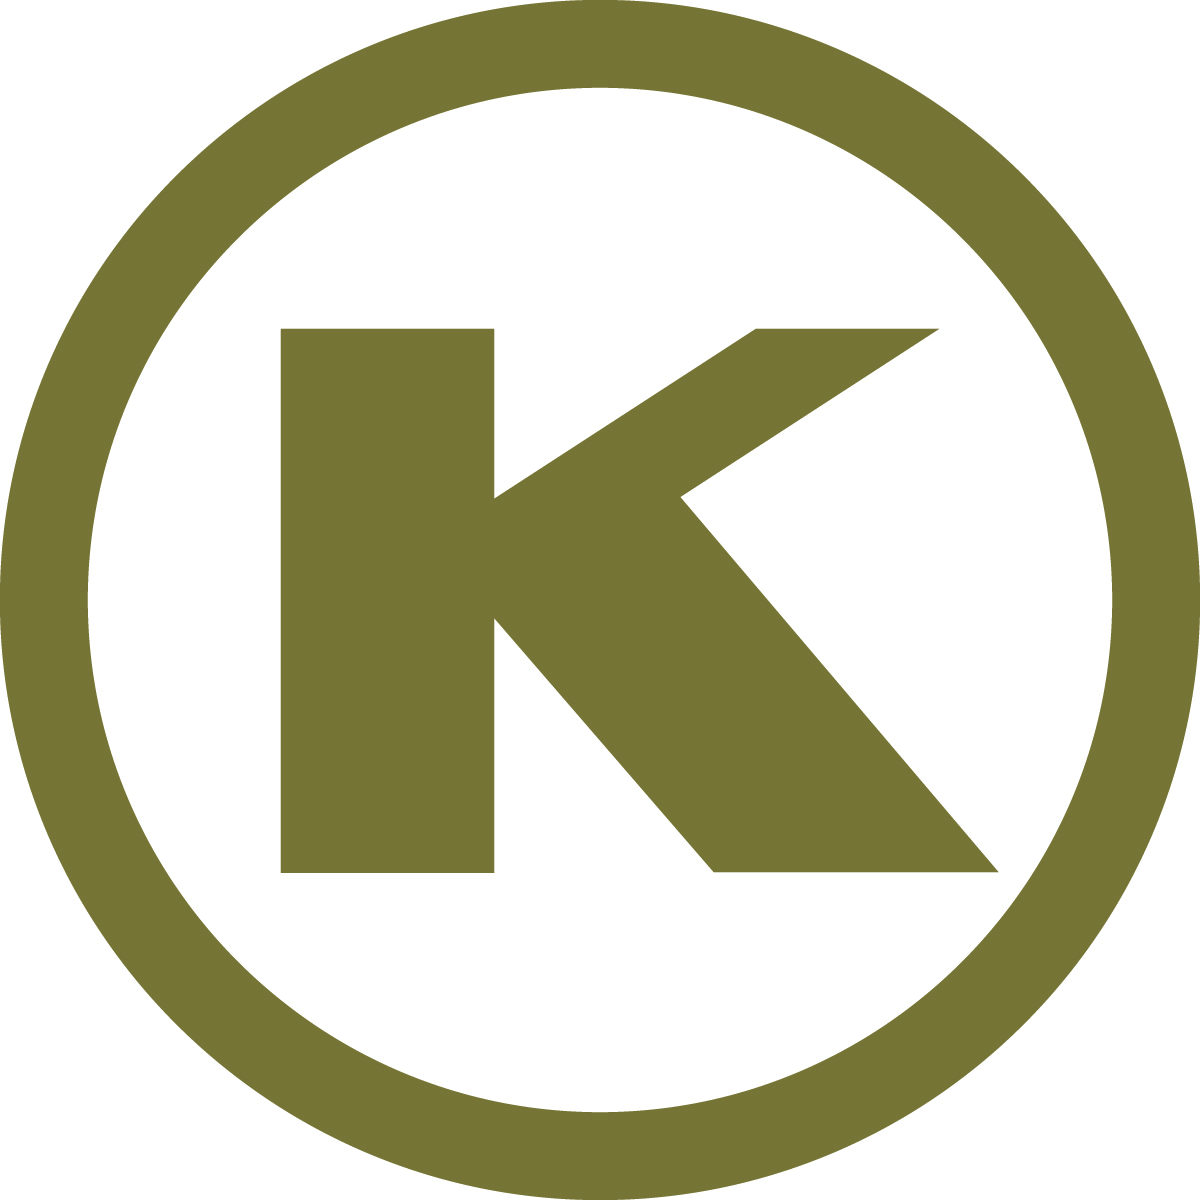 Kosher certification and compliance.